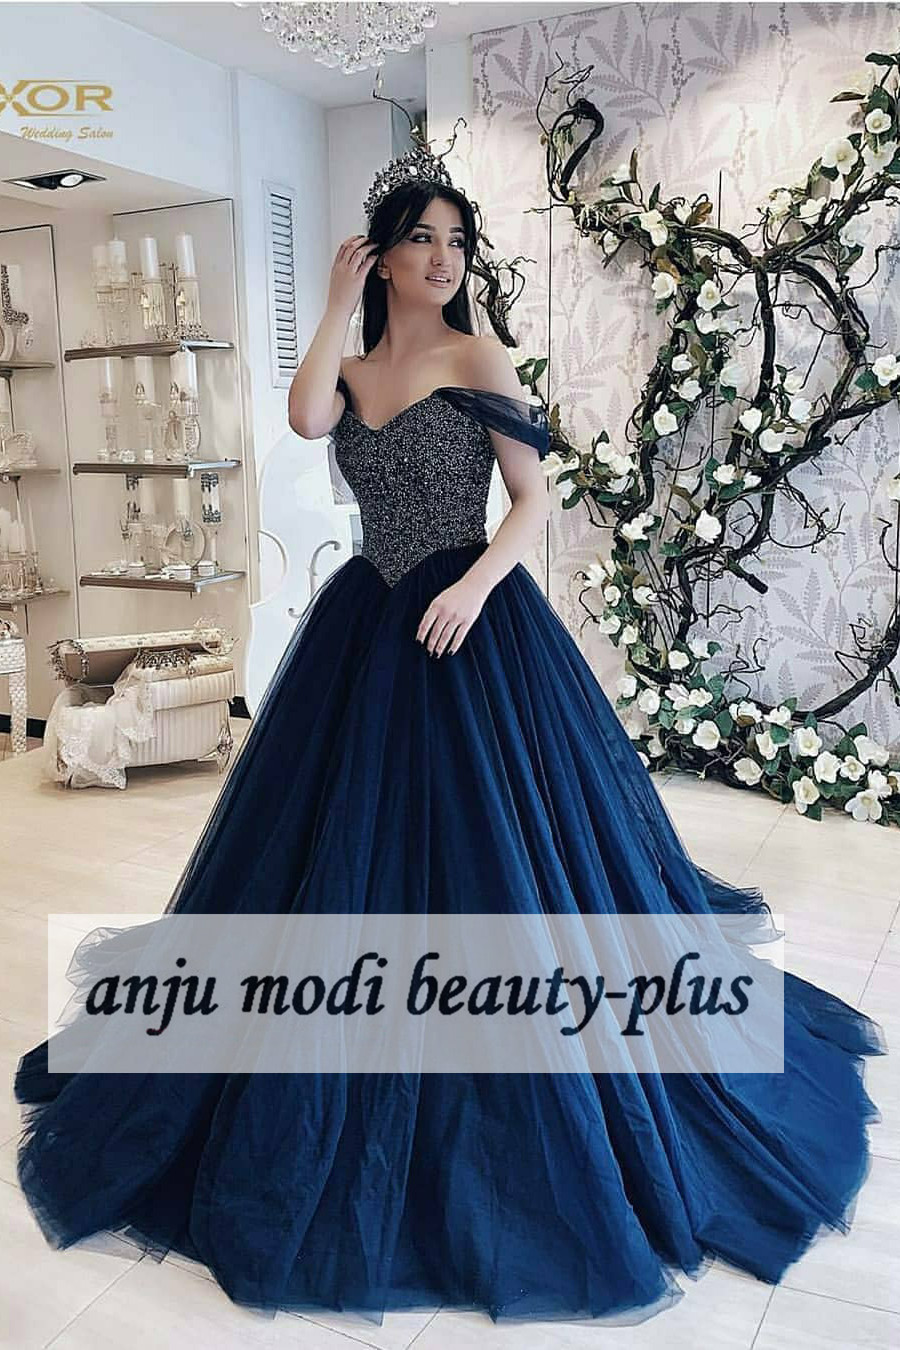 2020 Long Off Shoulder Beaded Prom Dresses Sleeveless Ball Gown Formal Evening Party Dress Robe De Soiree